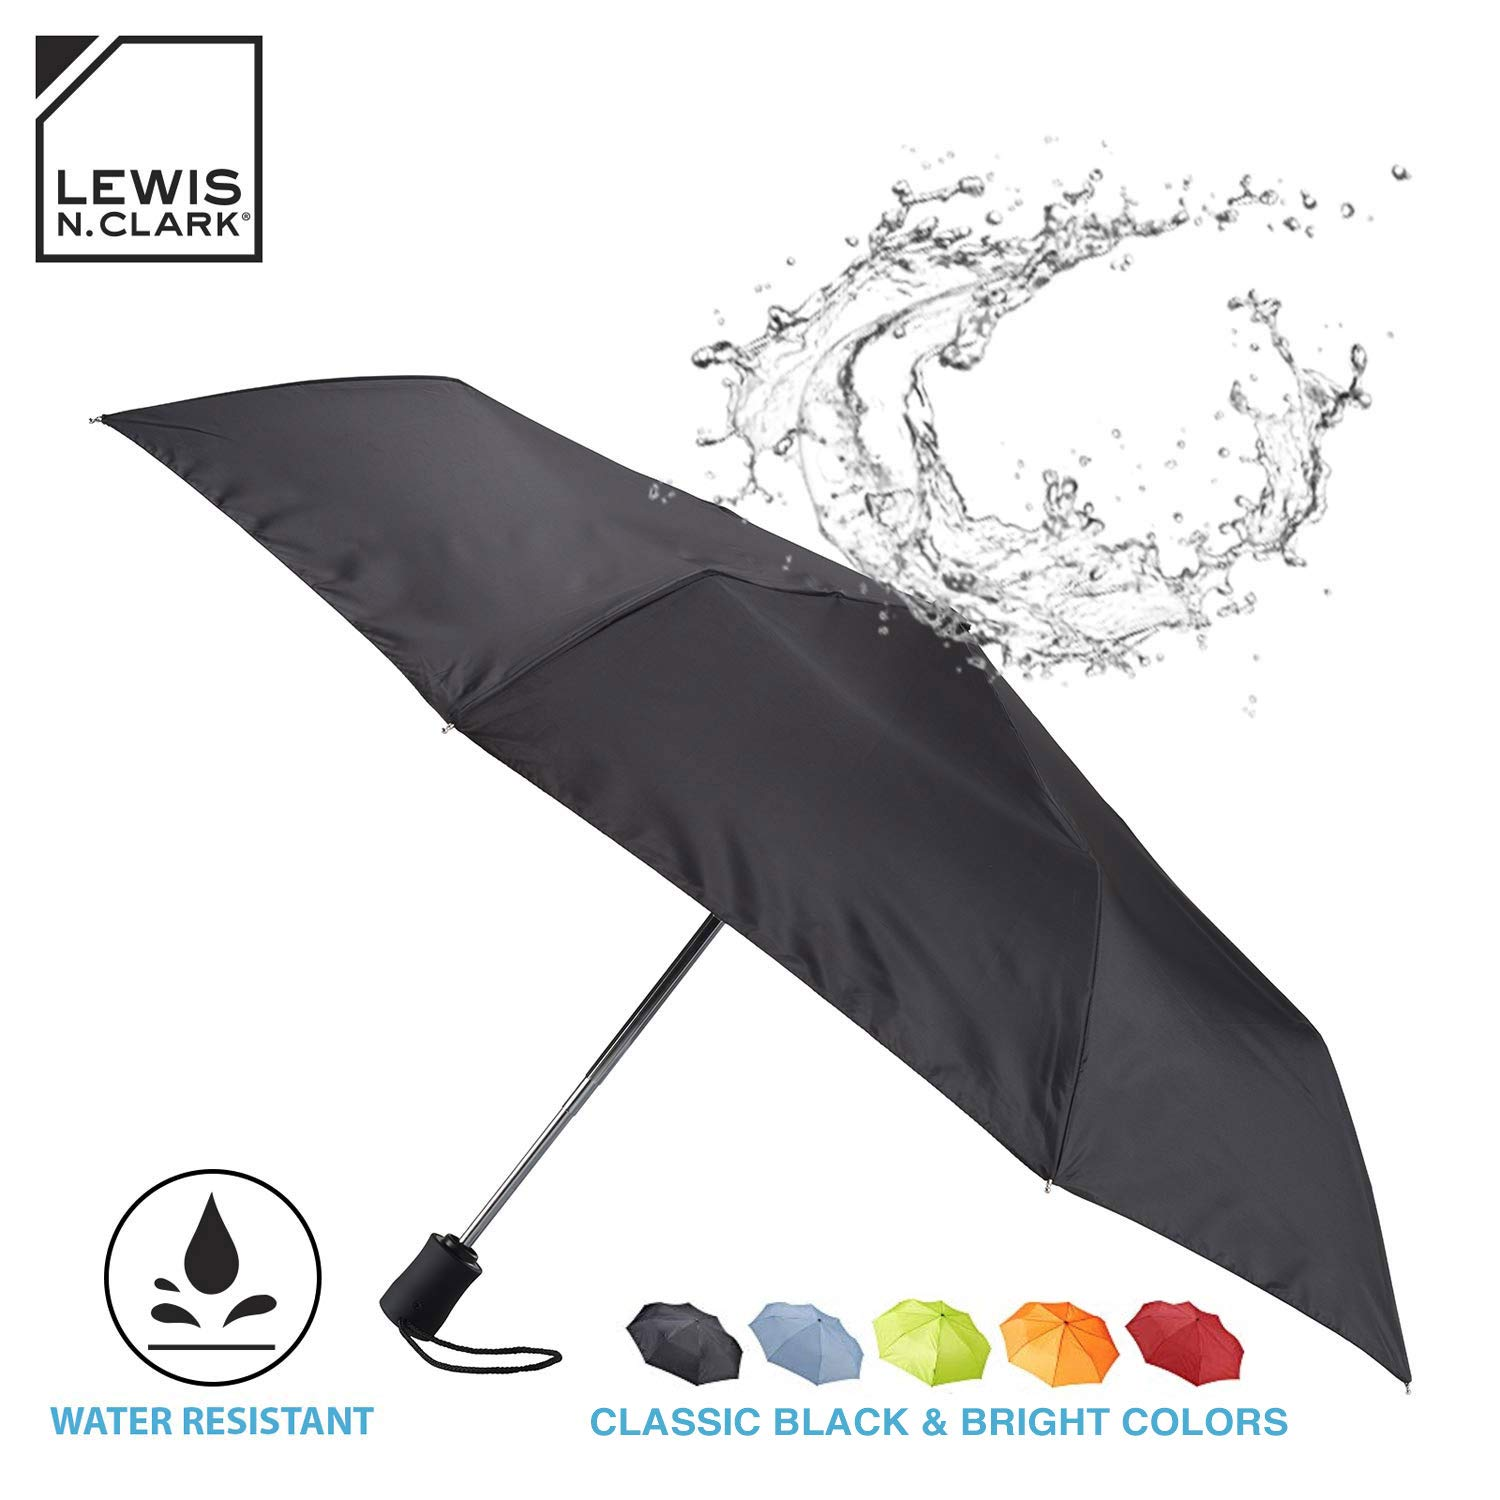 Lewis N. Clark Travel Umbrella: Windproof & Water Repellent with Mildew Resistant Fabric, Automatic Open Close & 1 Year Warranty. - Black by Lewis N. Clark (Image #1)